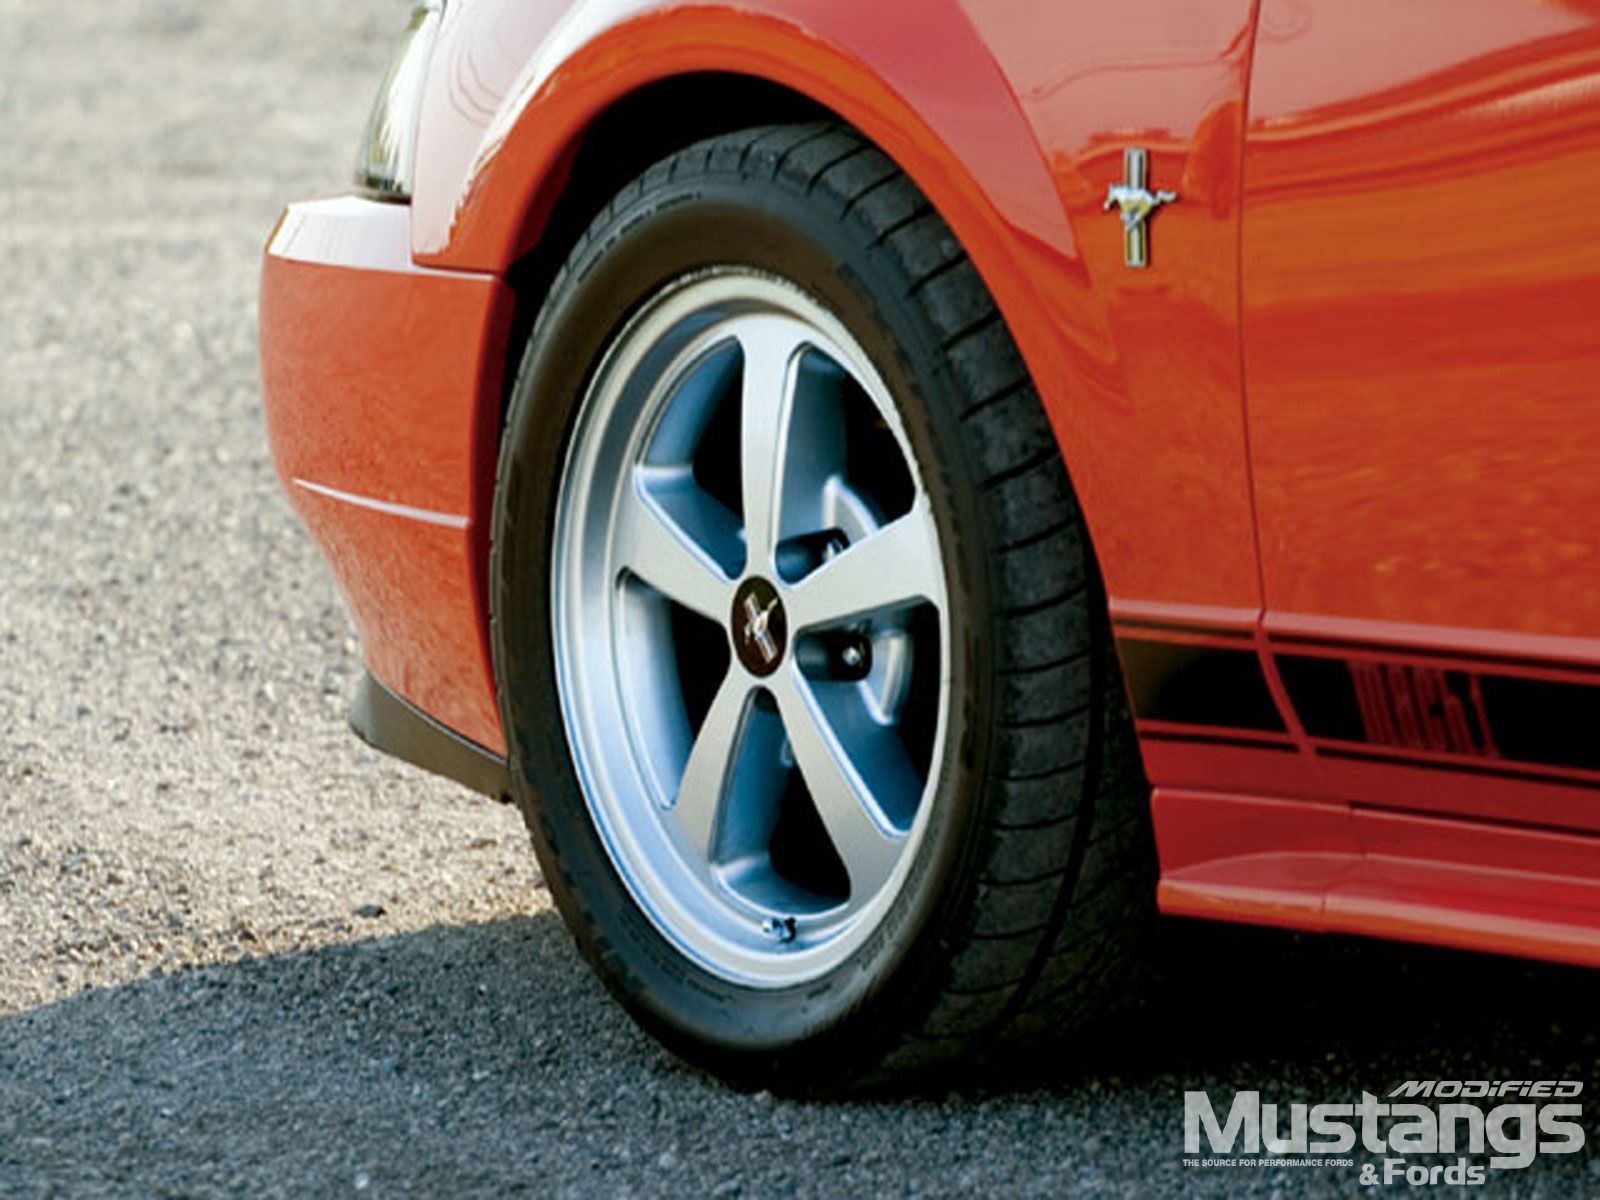 2003 Ford Mustang Mach 1 Wheels